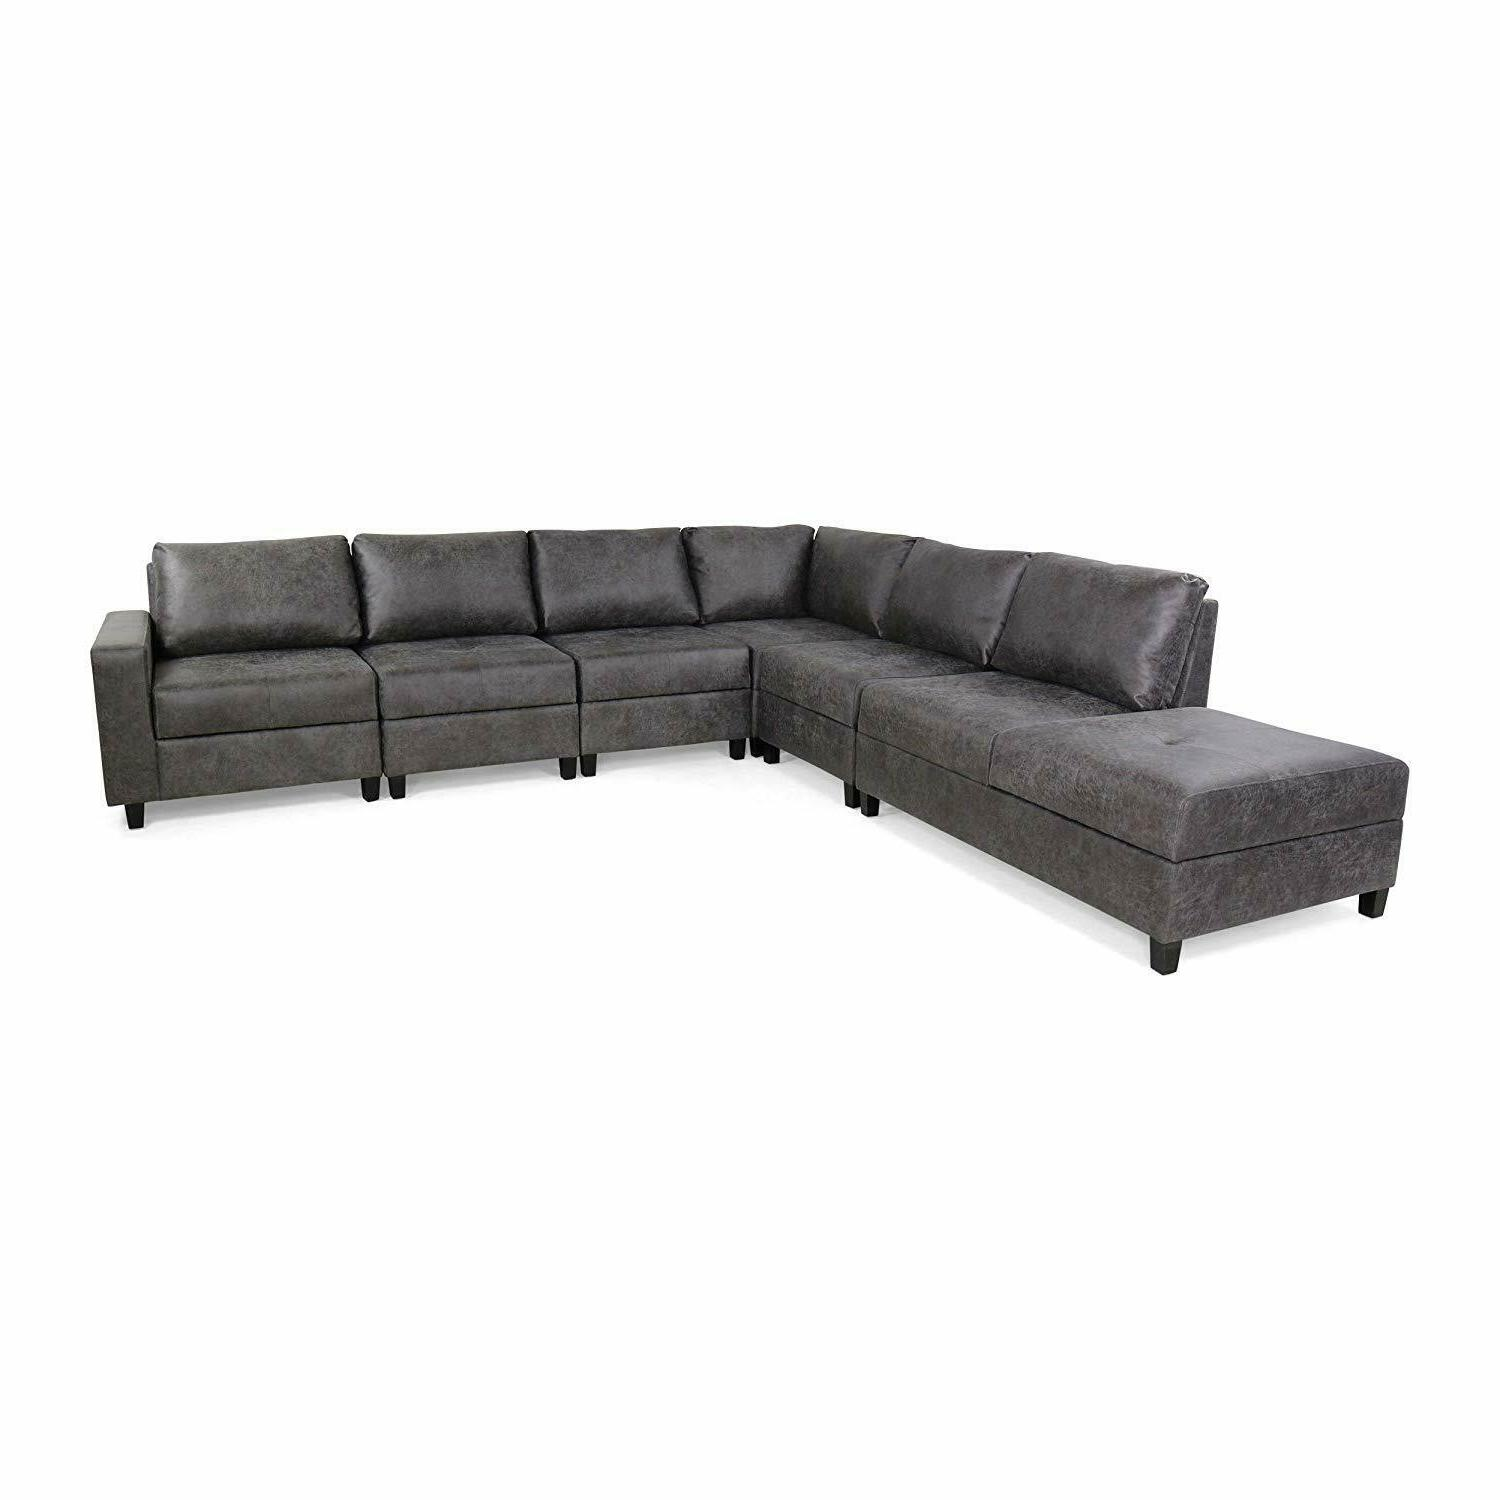 modern sectional sofa chaise lounge 6 seat